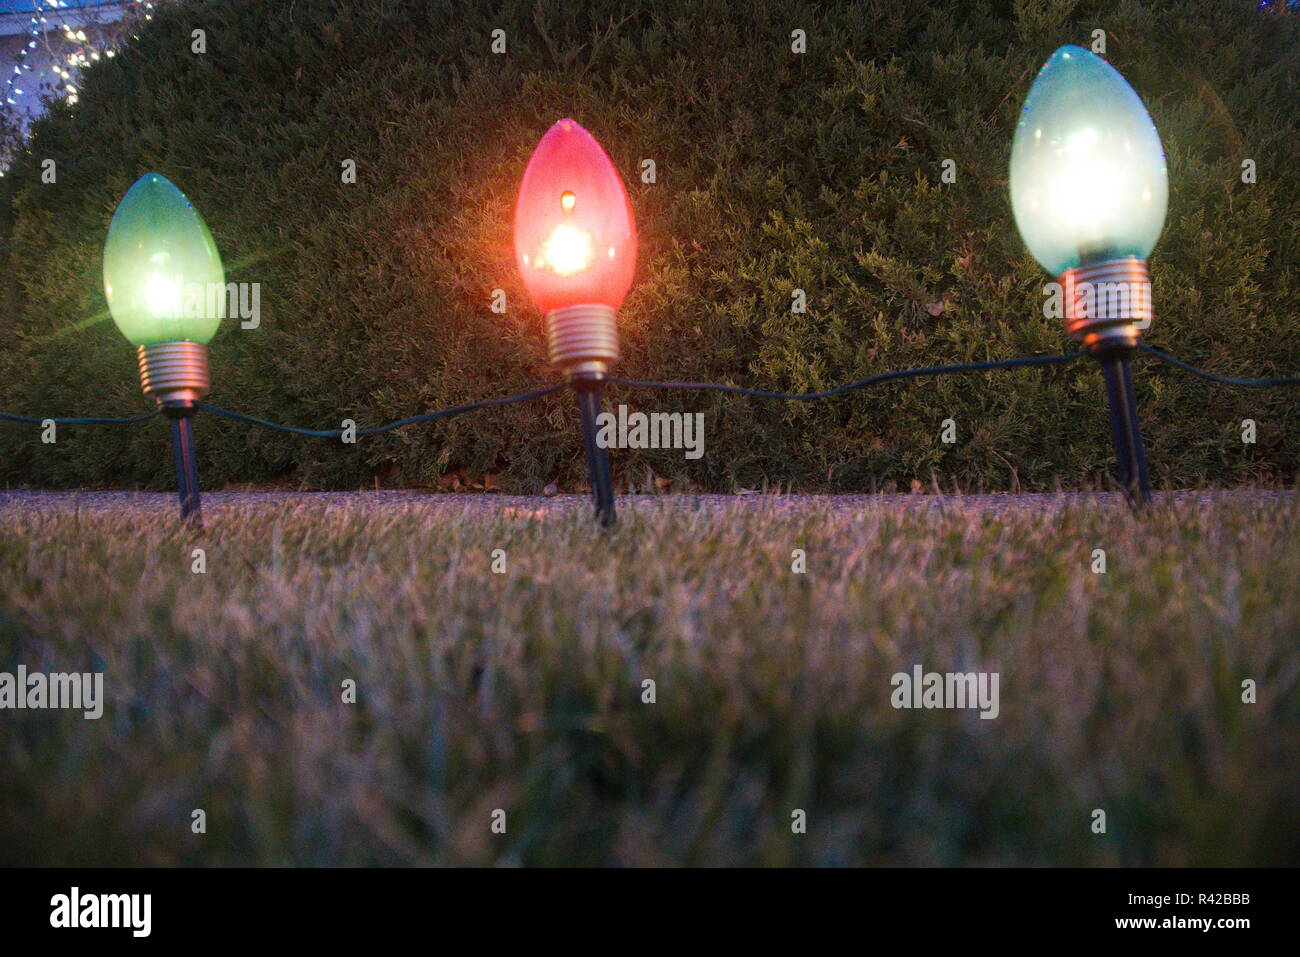 Christmas Bush Lights.Christmas Lights In A Row In The Grass With A Bush Behind